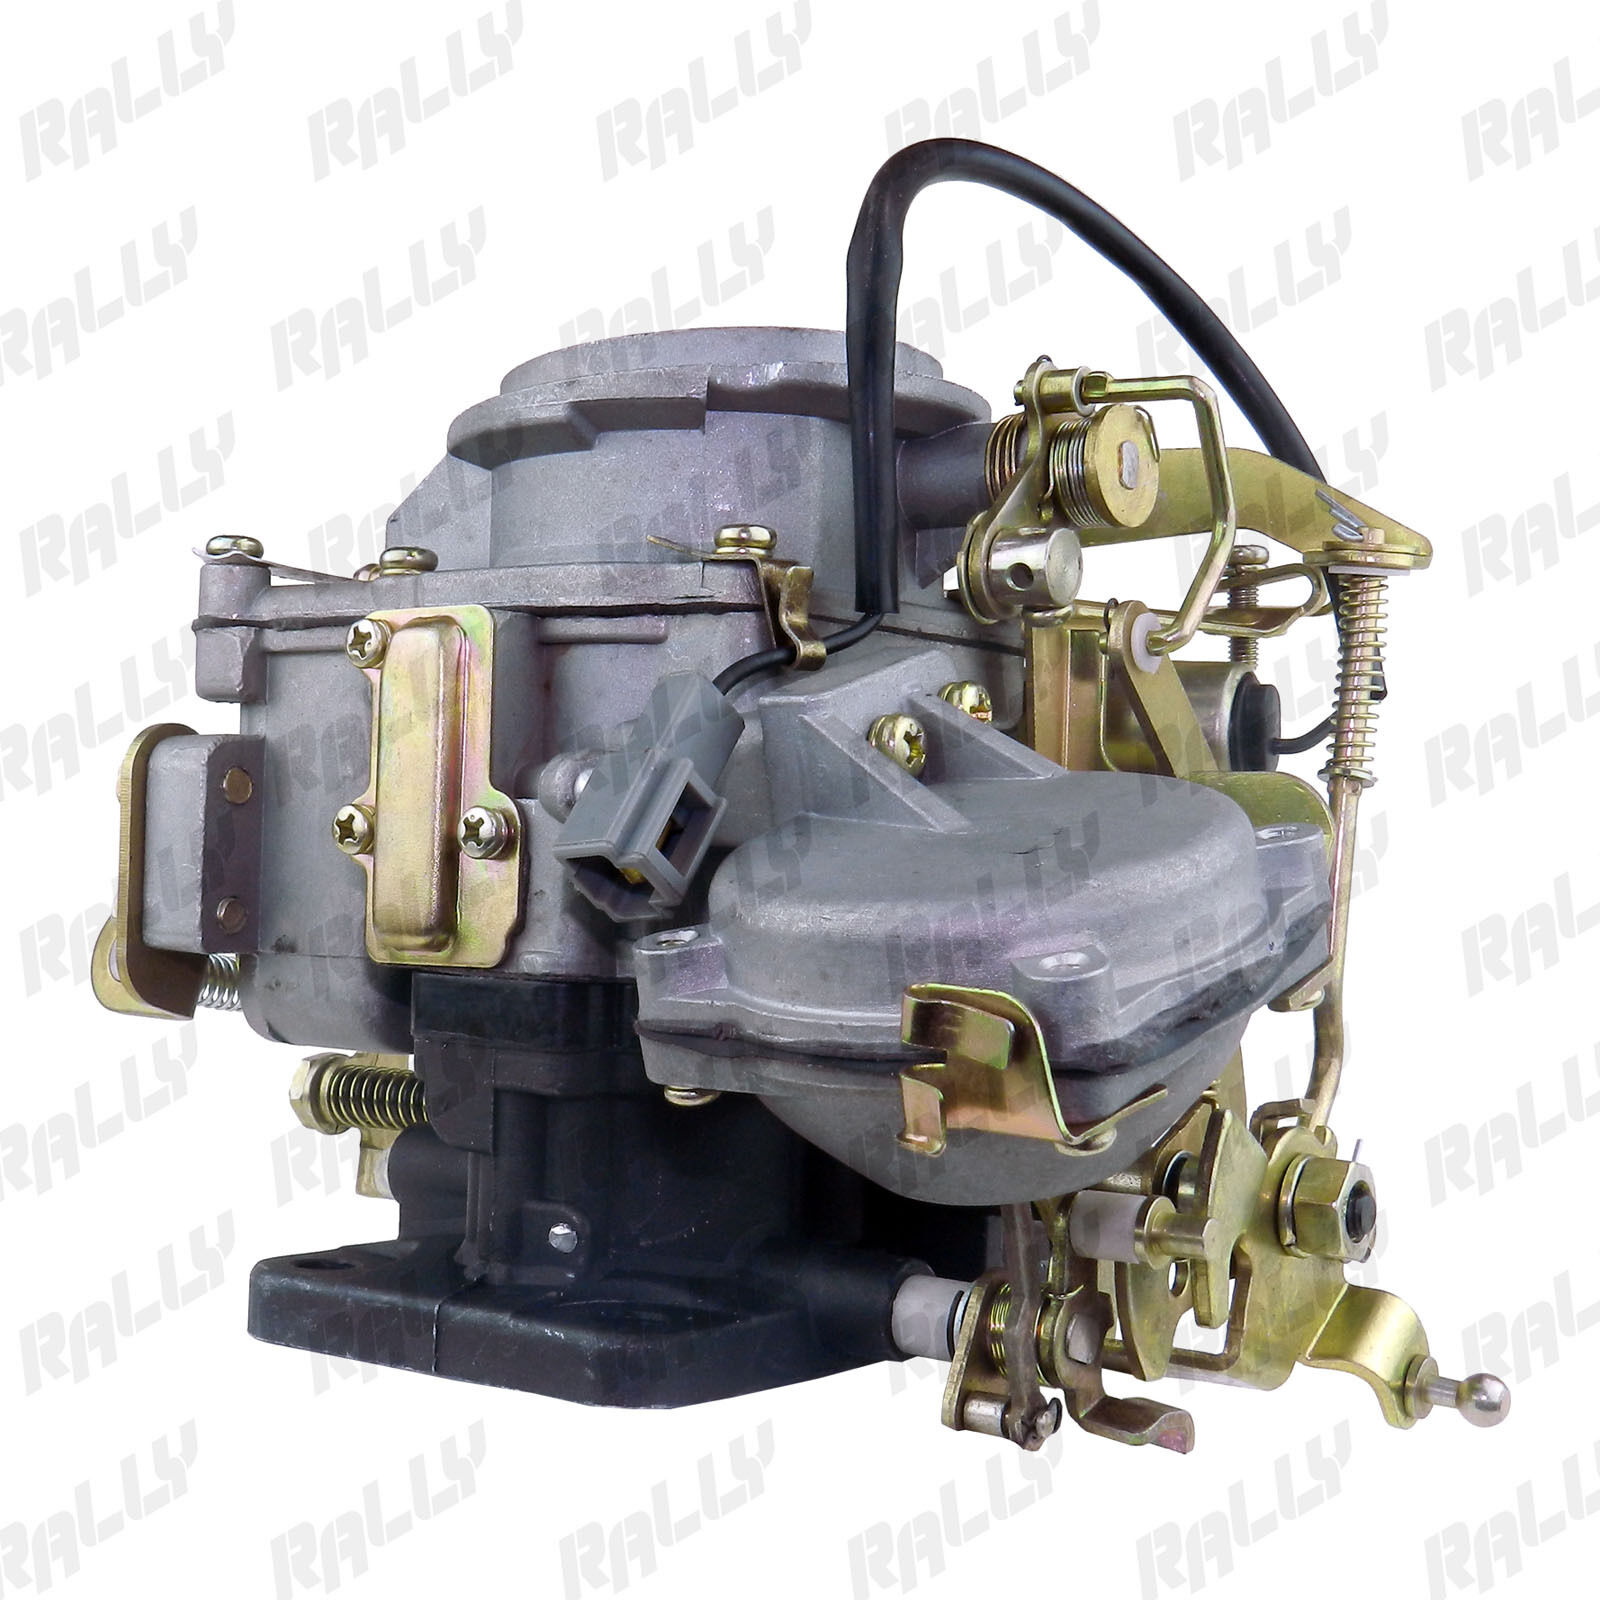 Brand New CAR CARBURETOR ASSY 16010-B5200/16010-B0302 For NISSAN  J15  Engine OEM quality Fast Shipping Warranty 30000 Miles